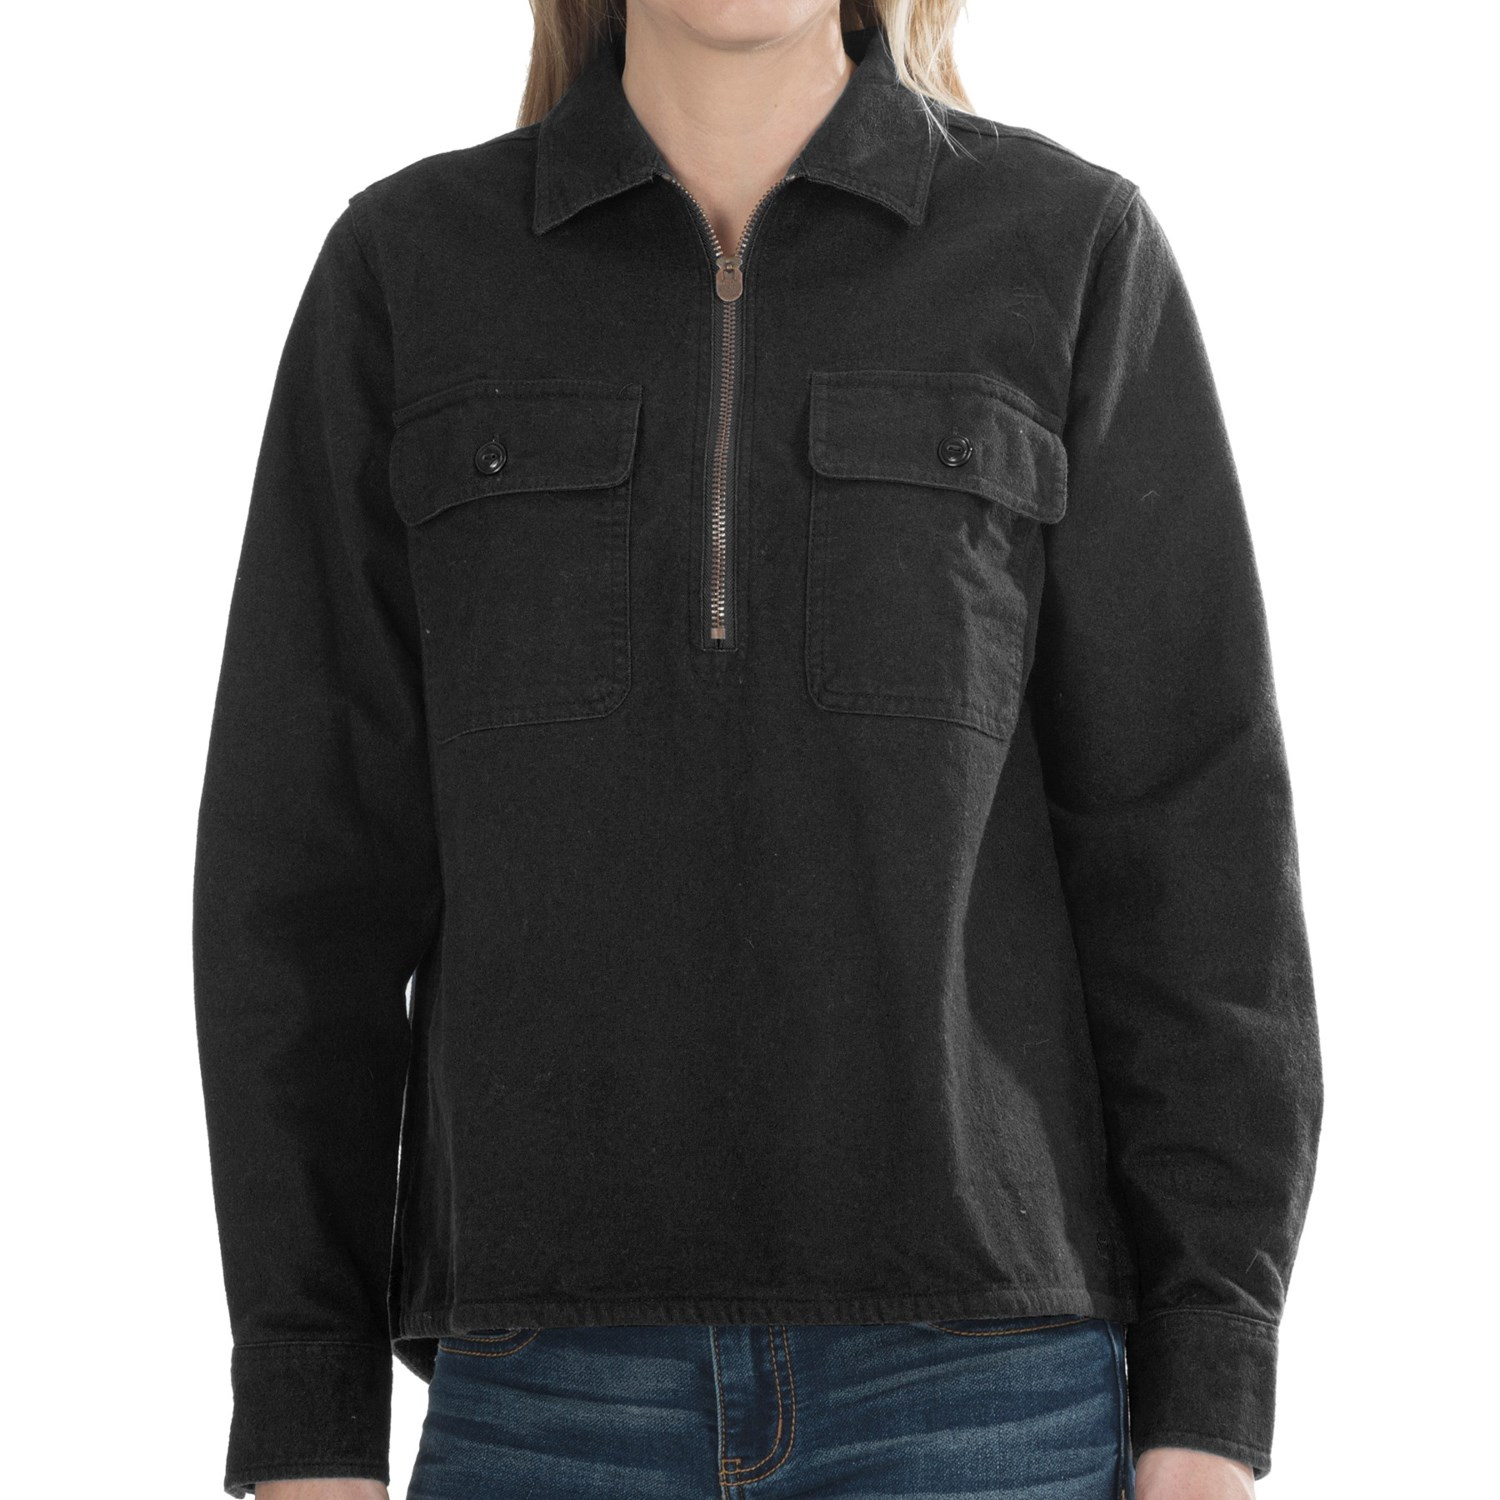 Woolrich White Label Chamois Zip Shirt (For Women) 8519M